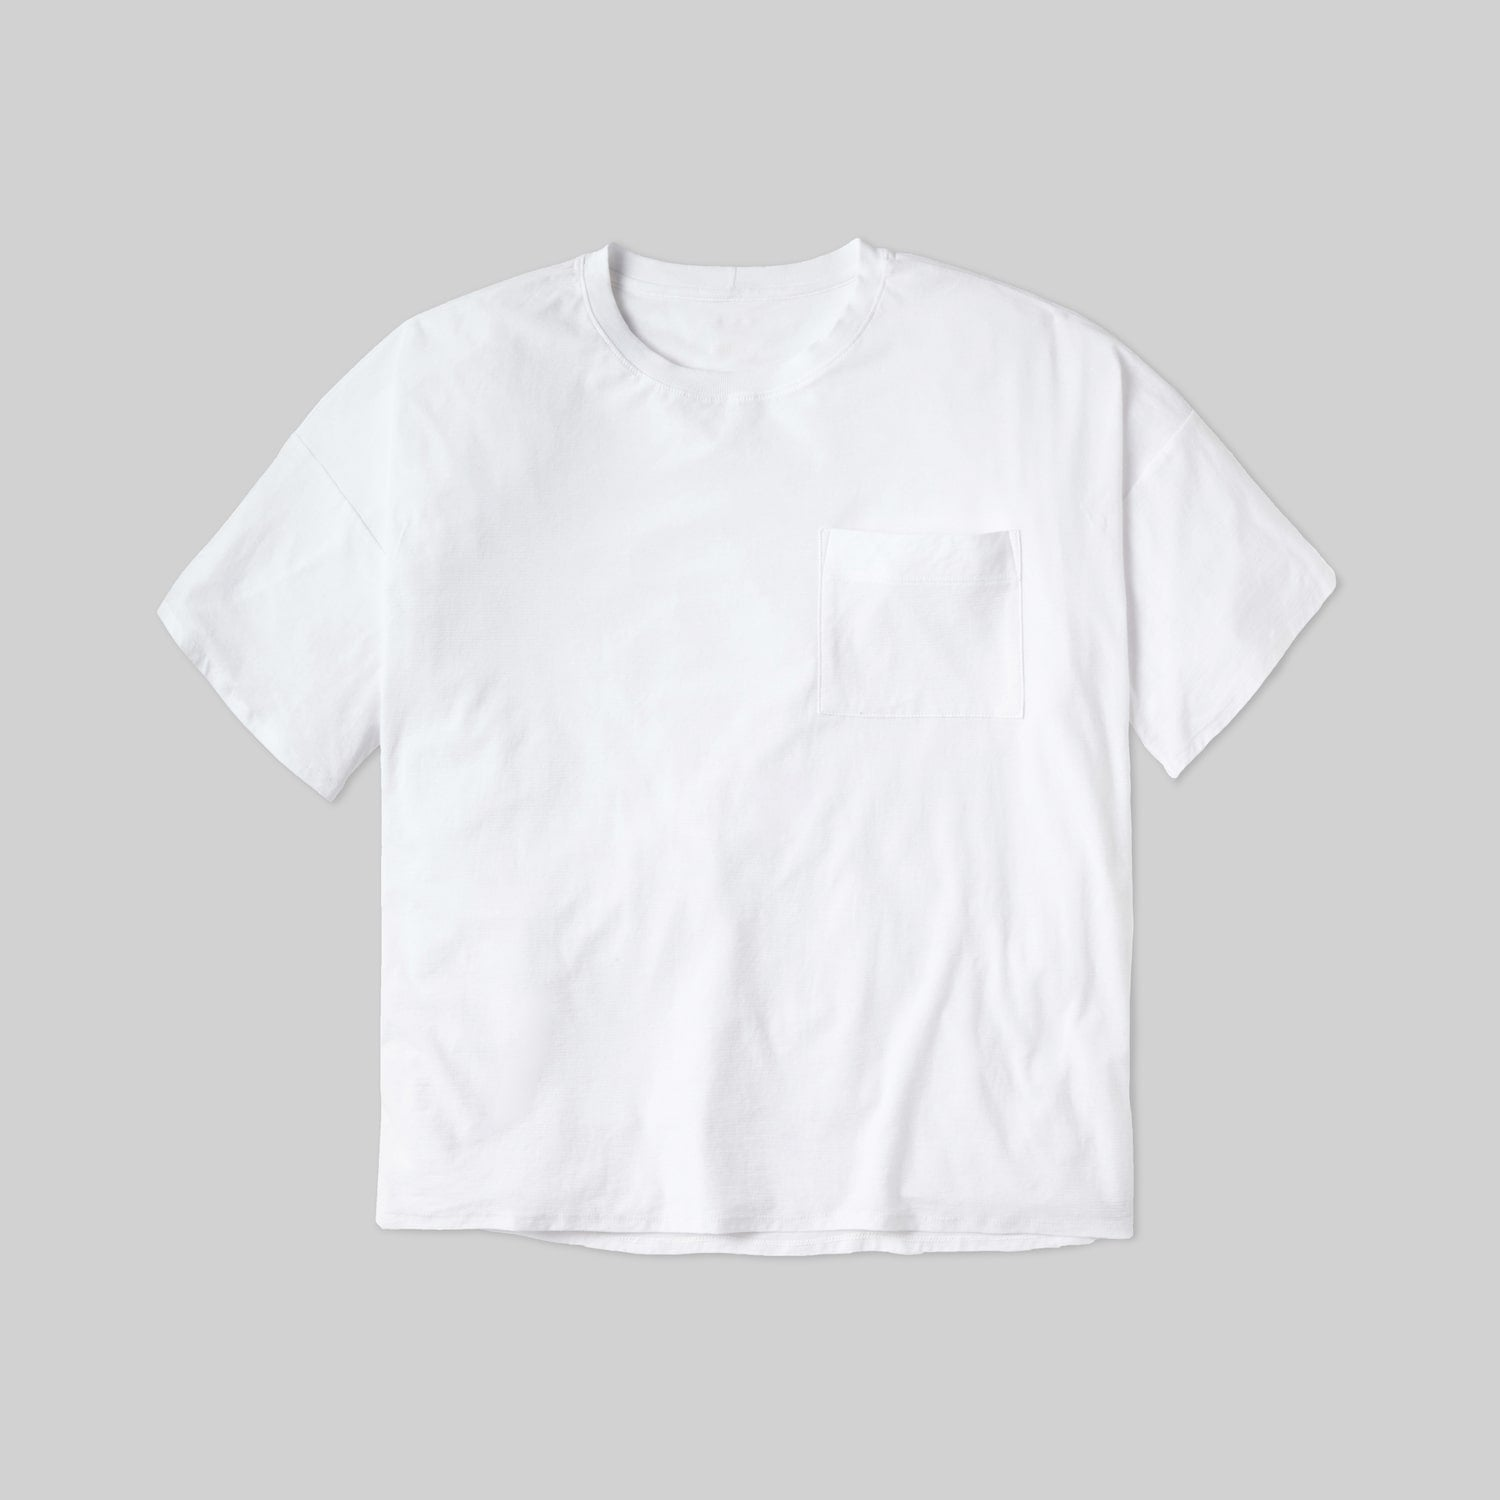 Lahgo Sleepwear Cool Short Sleeve Tee - #White